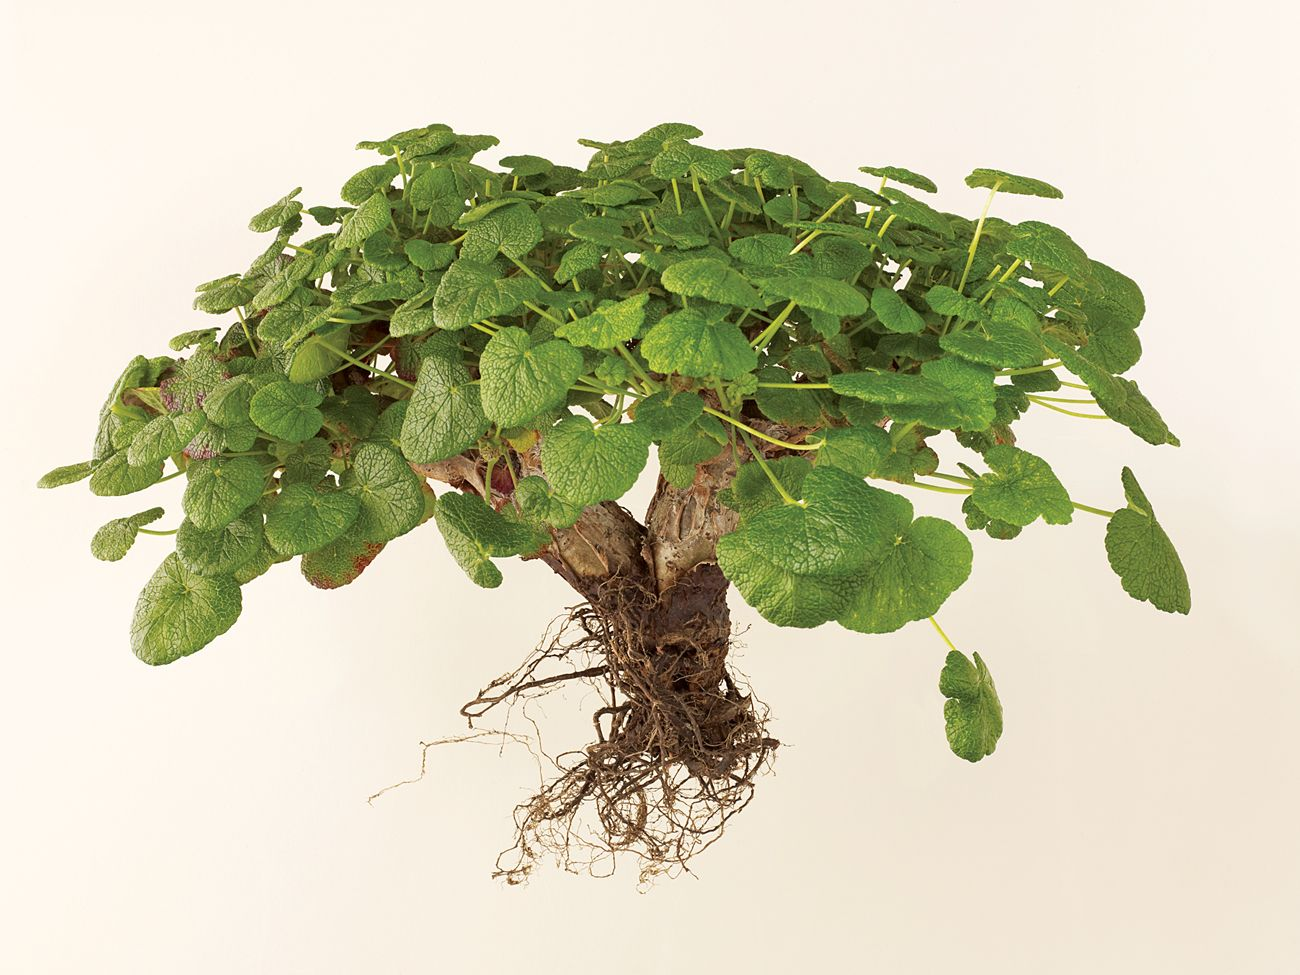 Pelargonium cotyledonis is endangered on its native St. Helena, an island off the coast of West Africa because of roaming goats, this species  Resembling a Lilliputian tree with heart-shape leaves, it blooms white from spring into summer and appreciates a bit of summer shade.